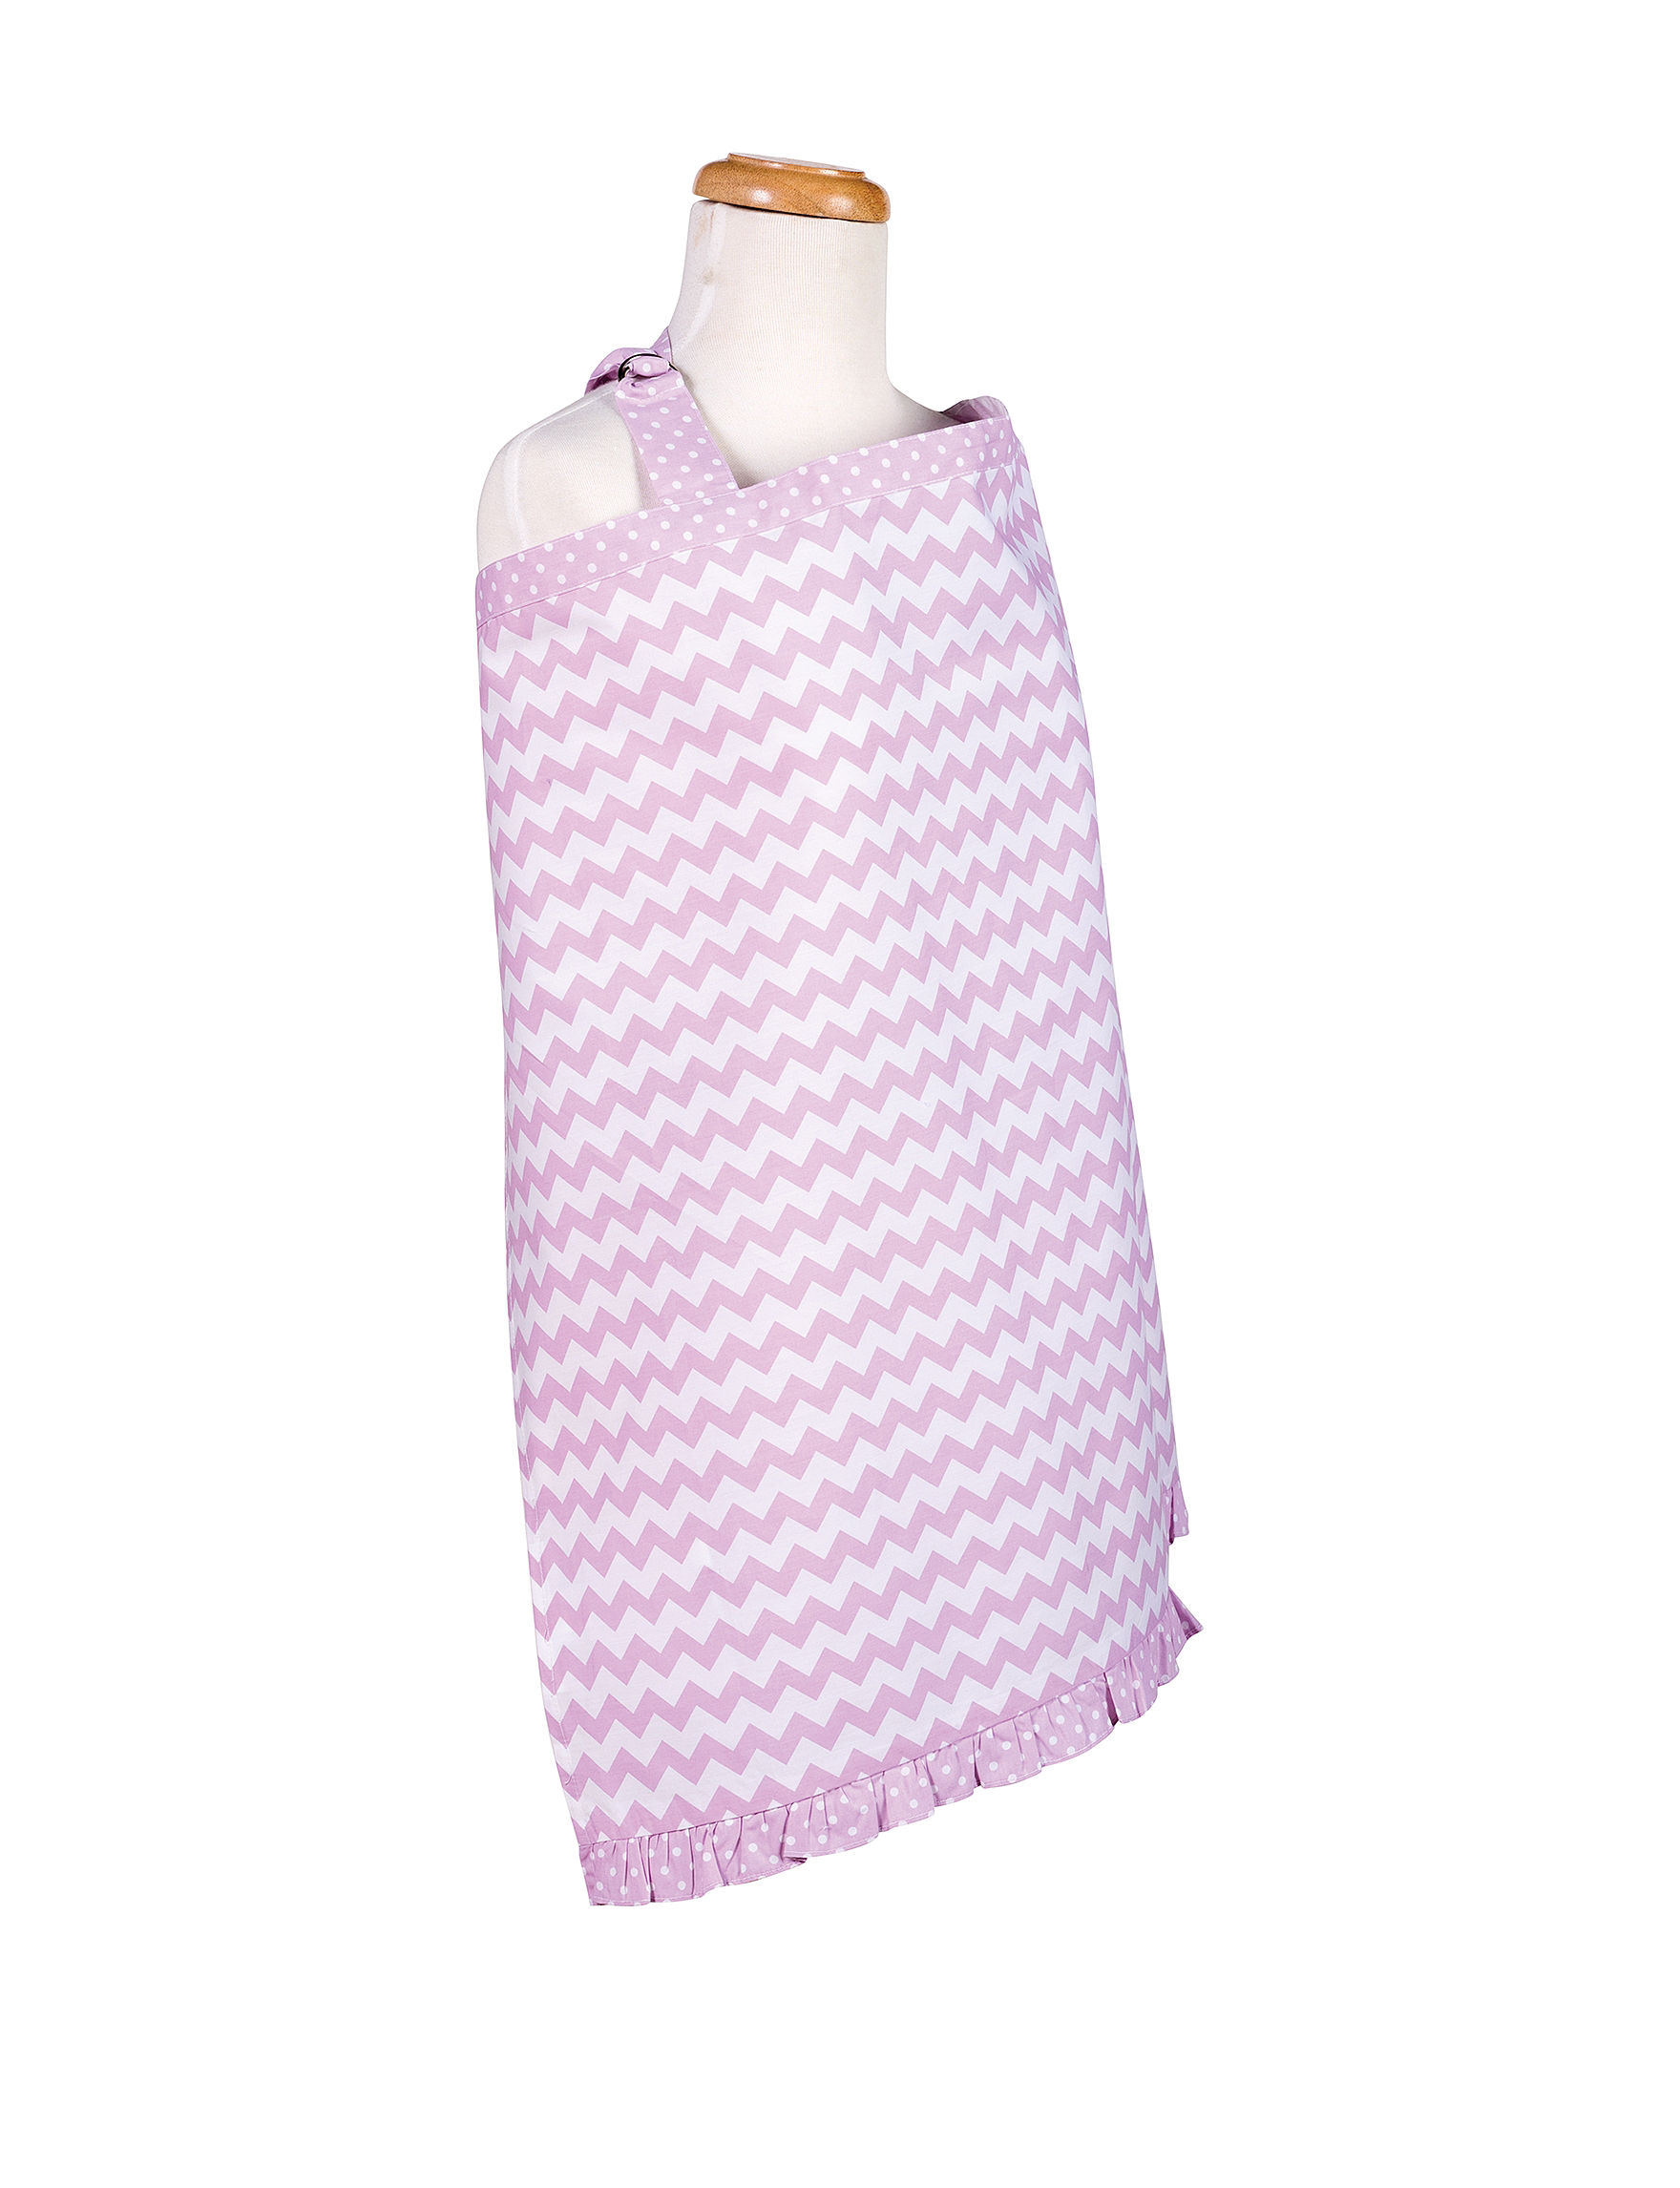 Trend Lab Purple / White Bibs & Burp Cloths Breastfeeding